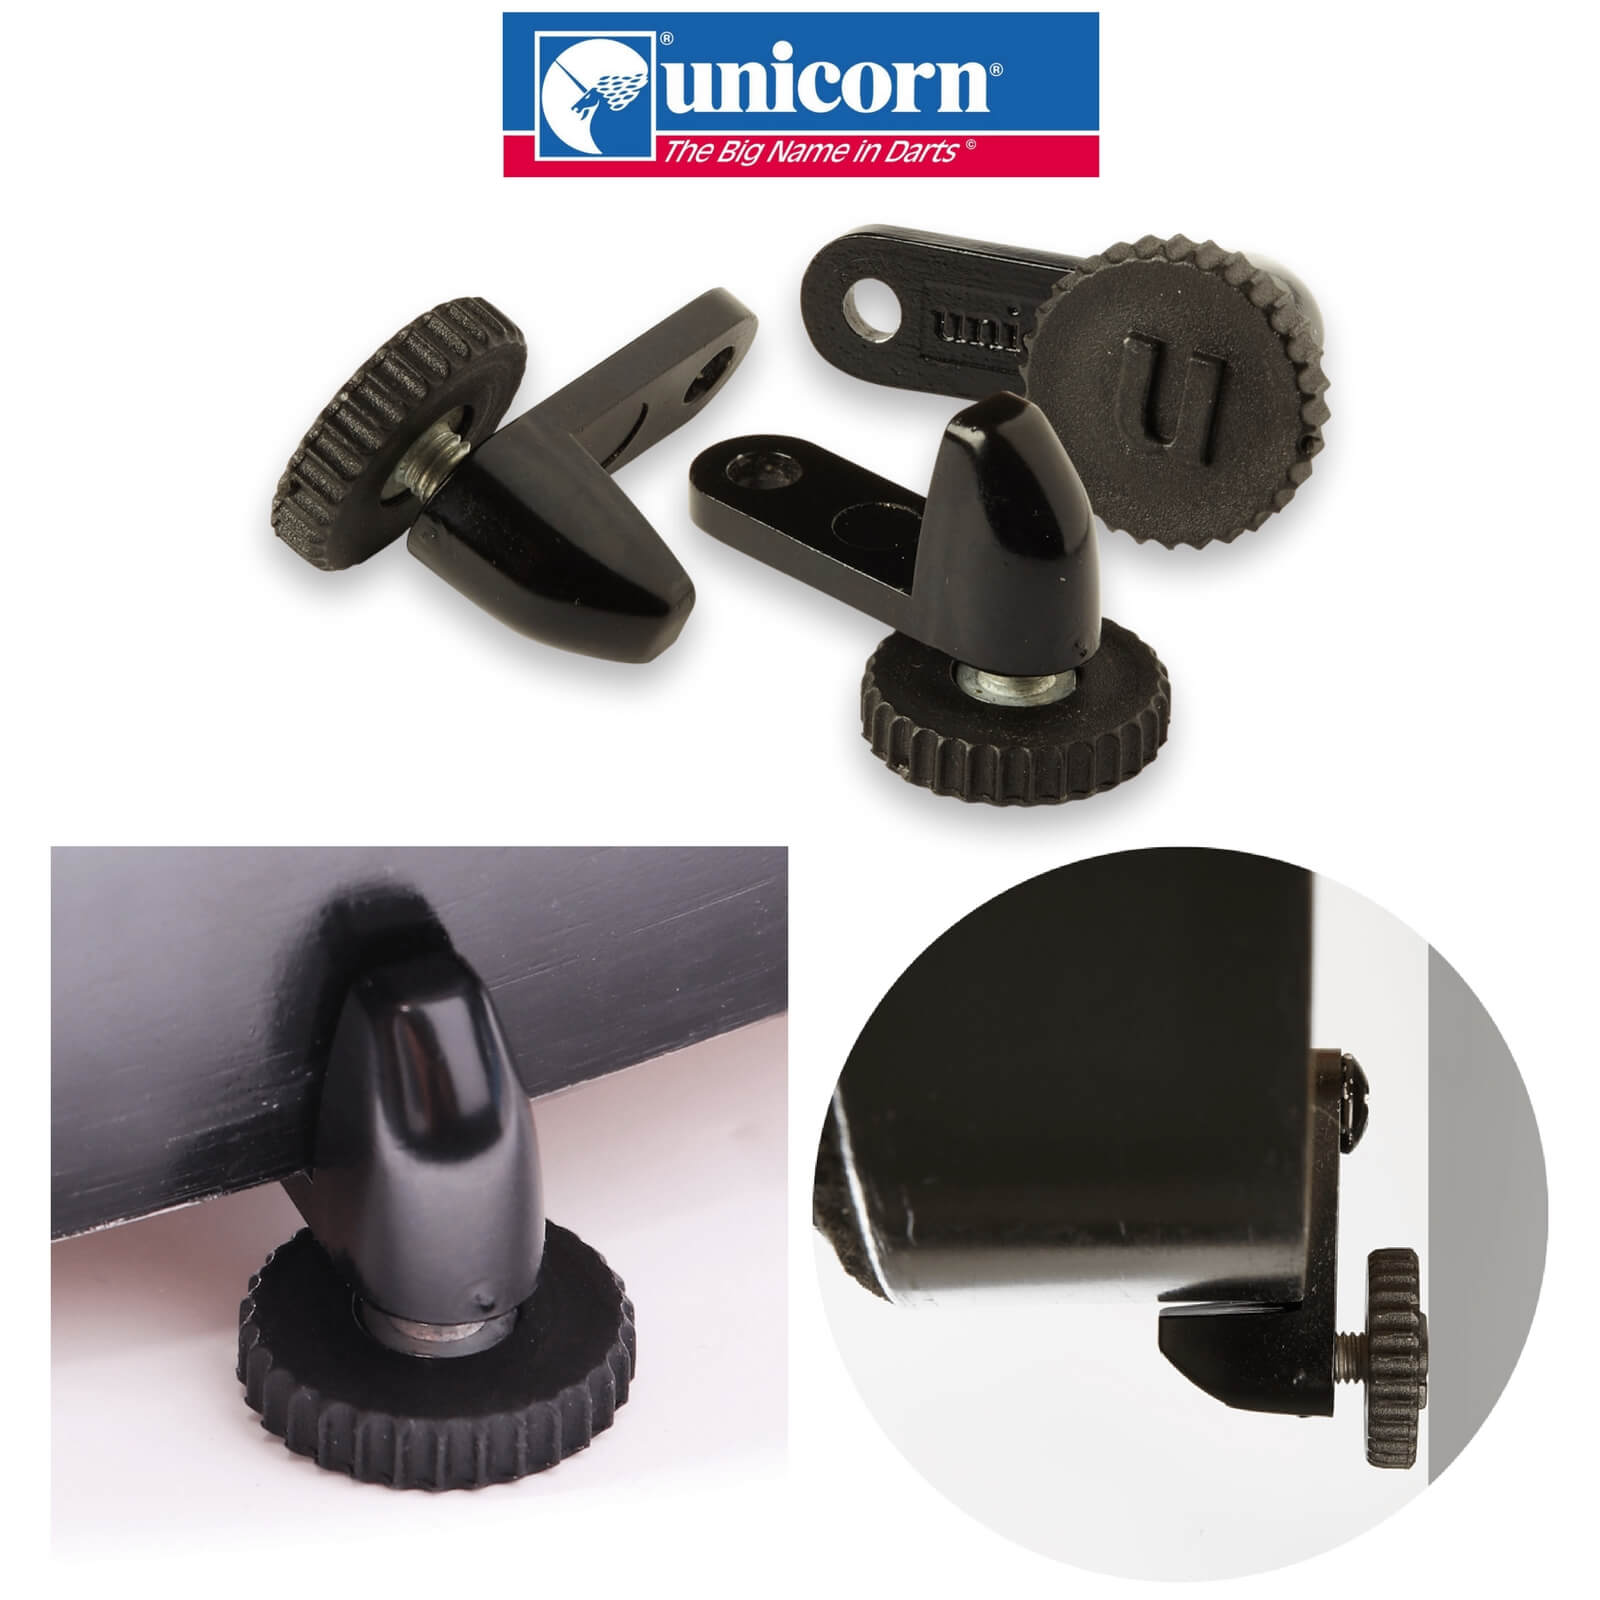 Dartboard Accessories - Unicorn - Unilock Dartboard Locking System